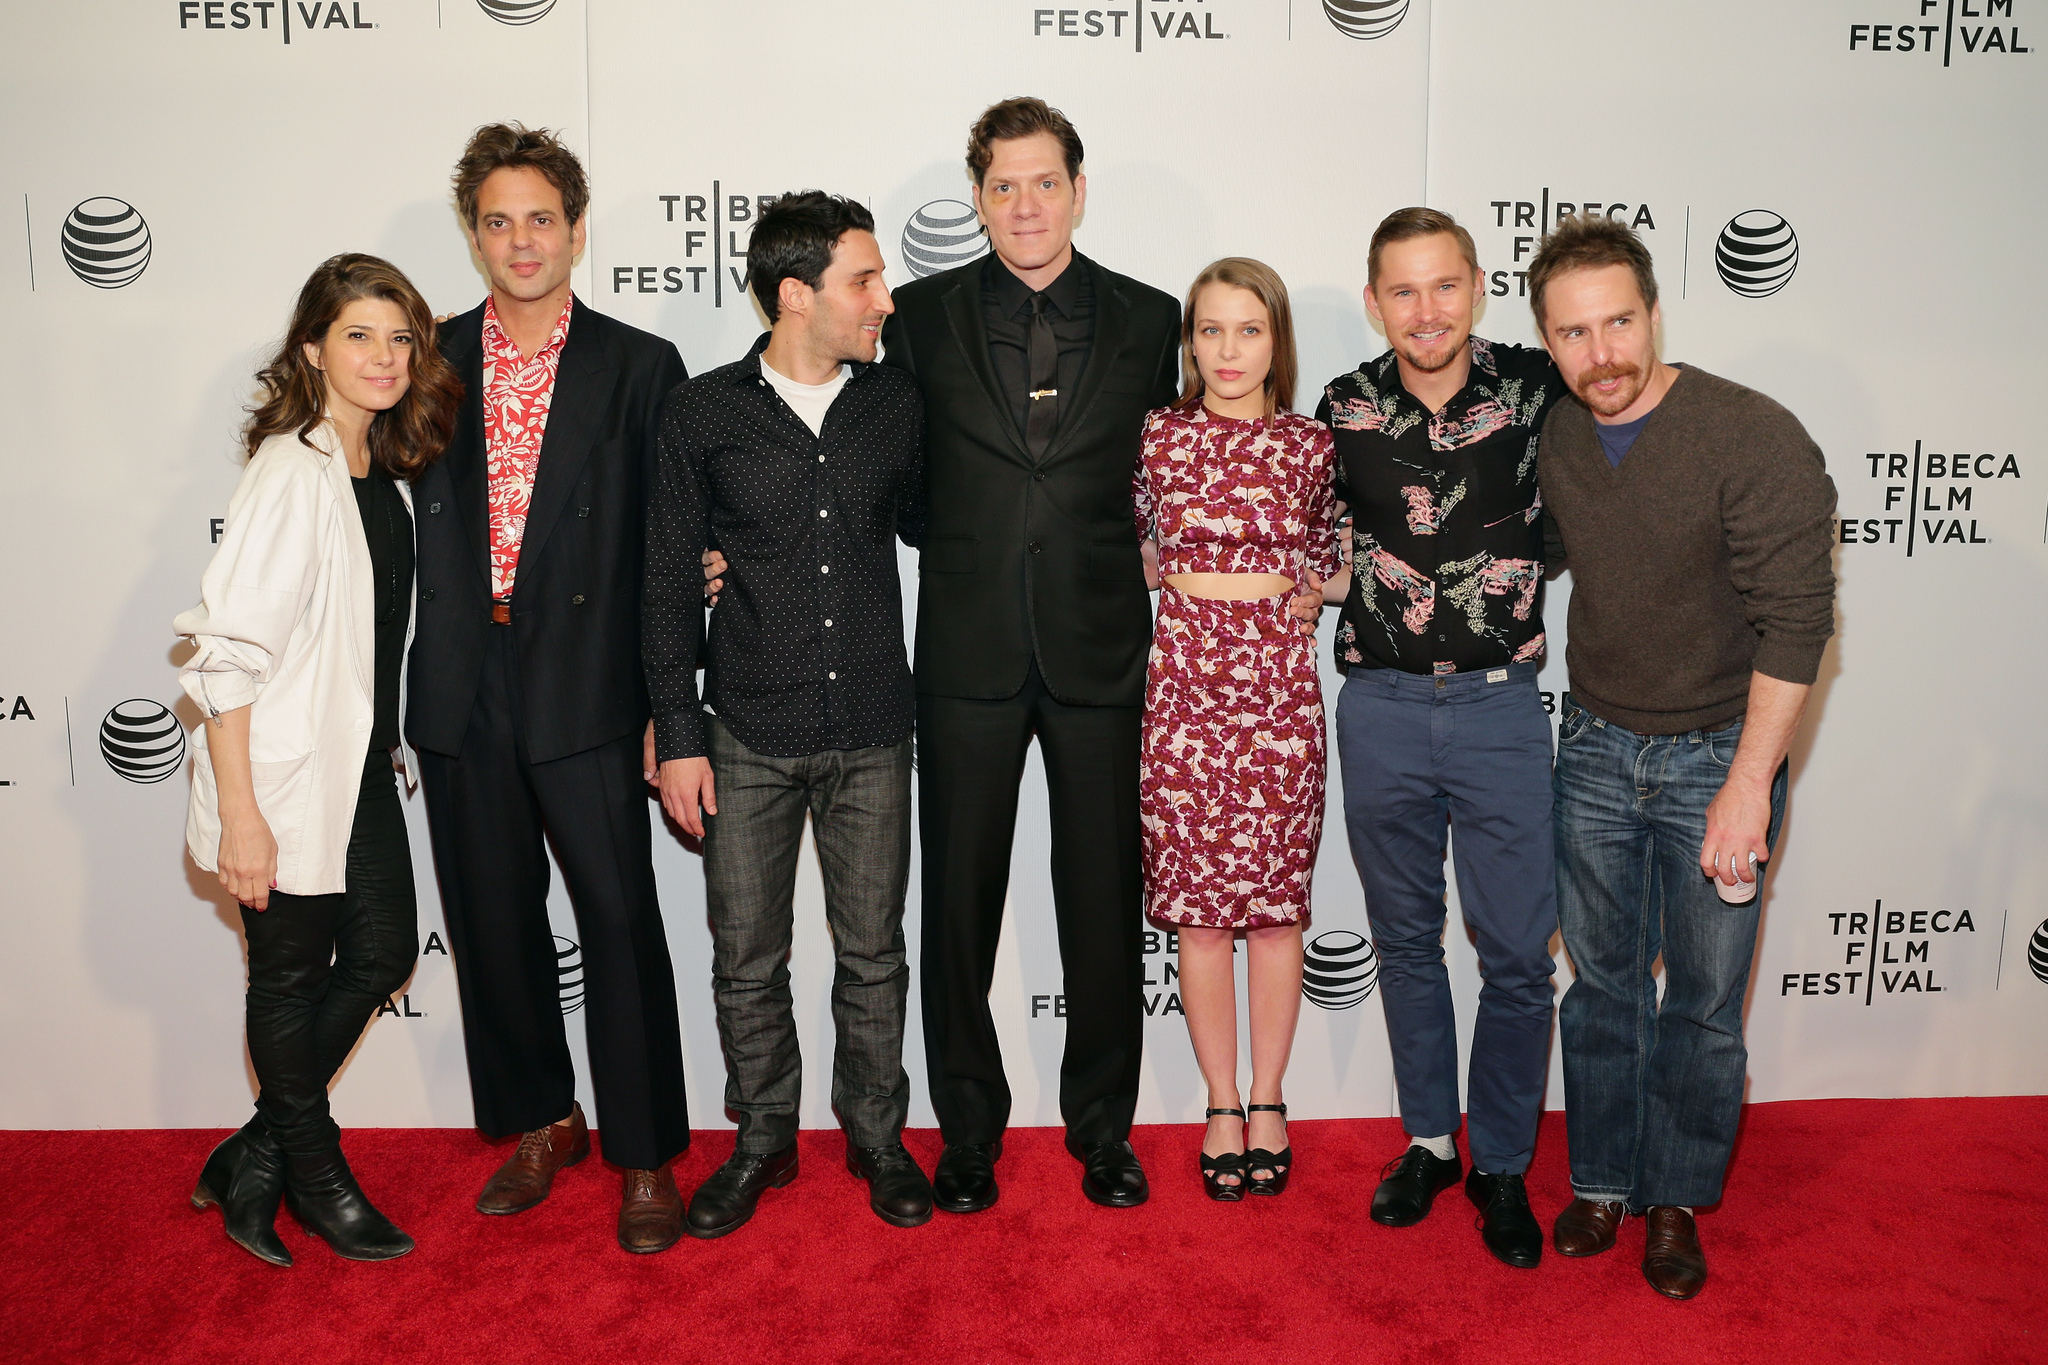 Marisa Tomei, Sam Rockwell, Michael Godere, Ivan Martin, Brian Geraghty, Adam Rapp, and Isabelle McNally at an event for Loitering with Intent (2014)